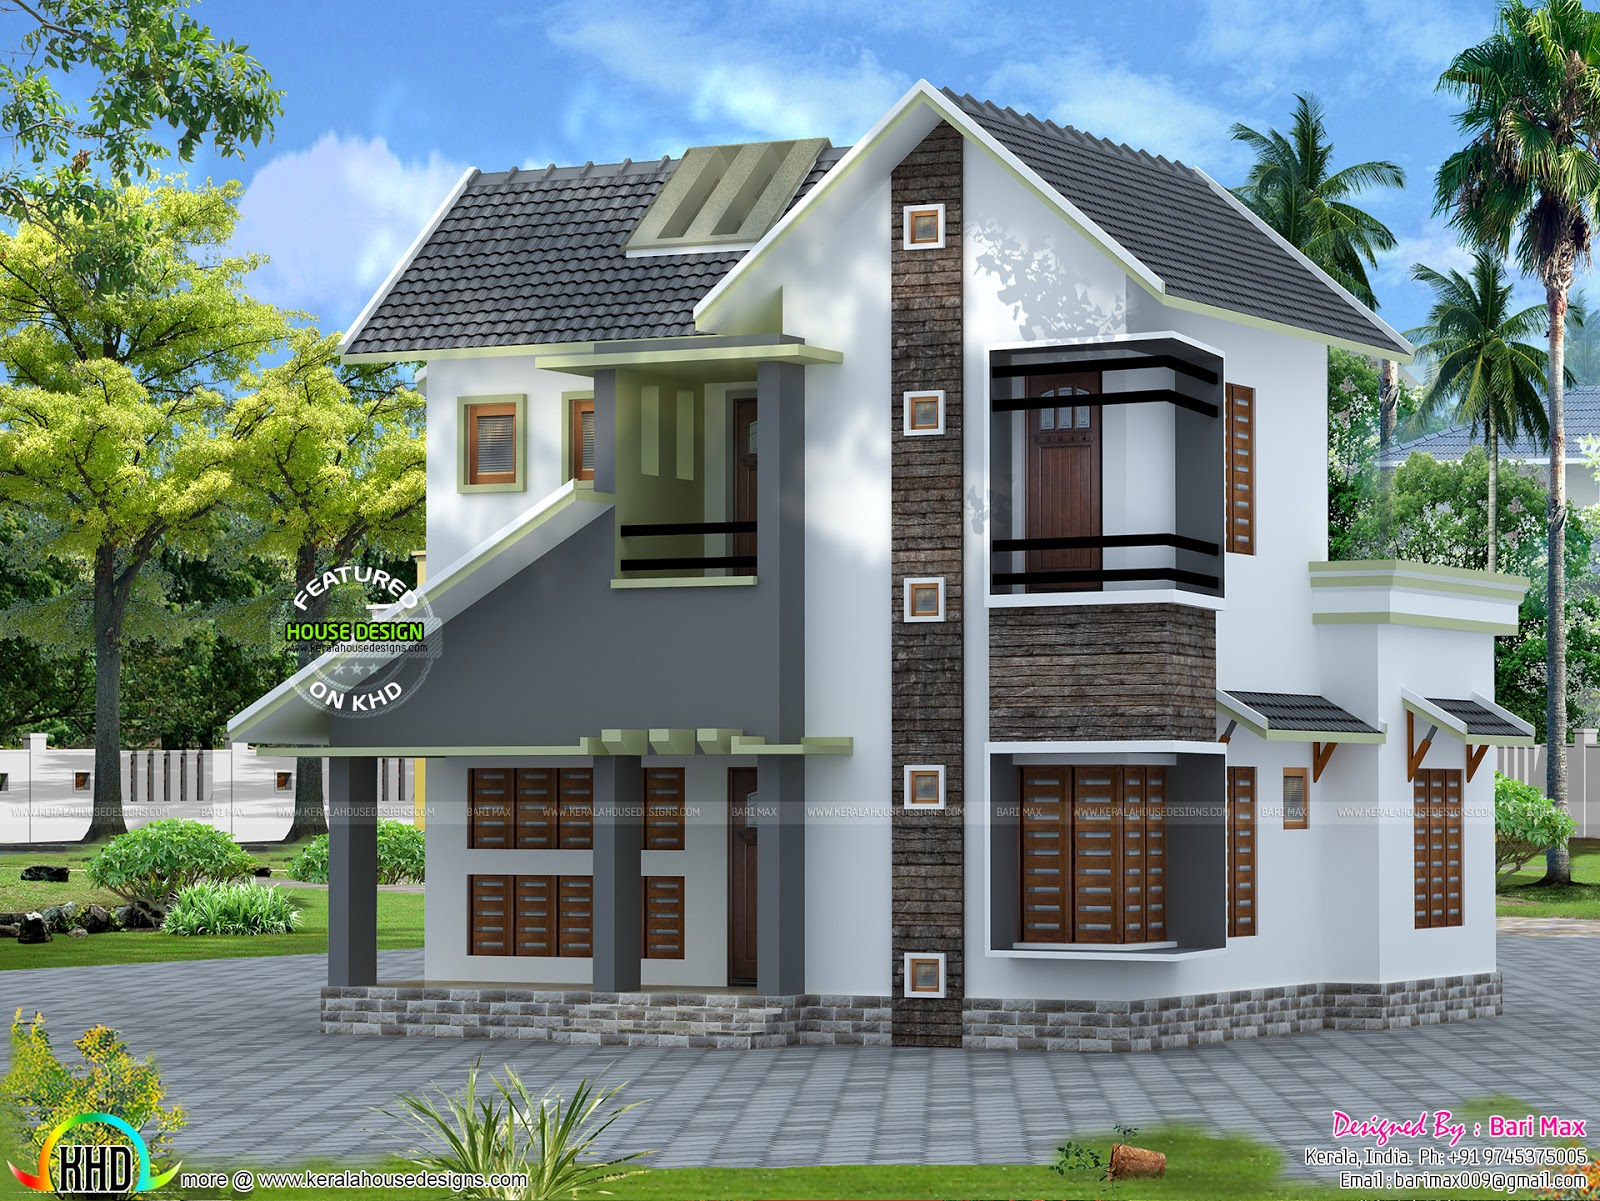 Slope roof low cost home design kerala home design and for Free house plans and designs with cost to build